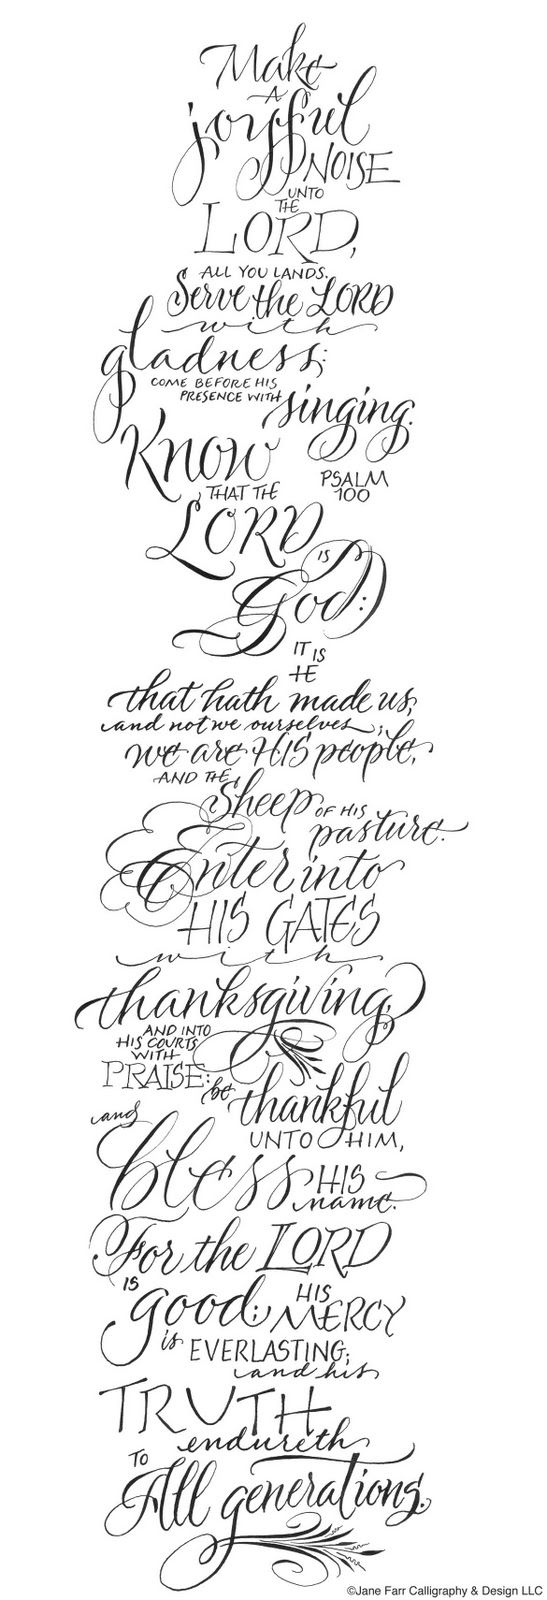 Psalm 100 kjv coloring pages ~ Best 20+ Psalm 100 kjv ideas on Pinterest